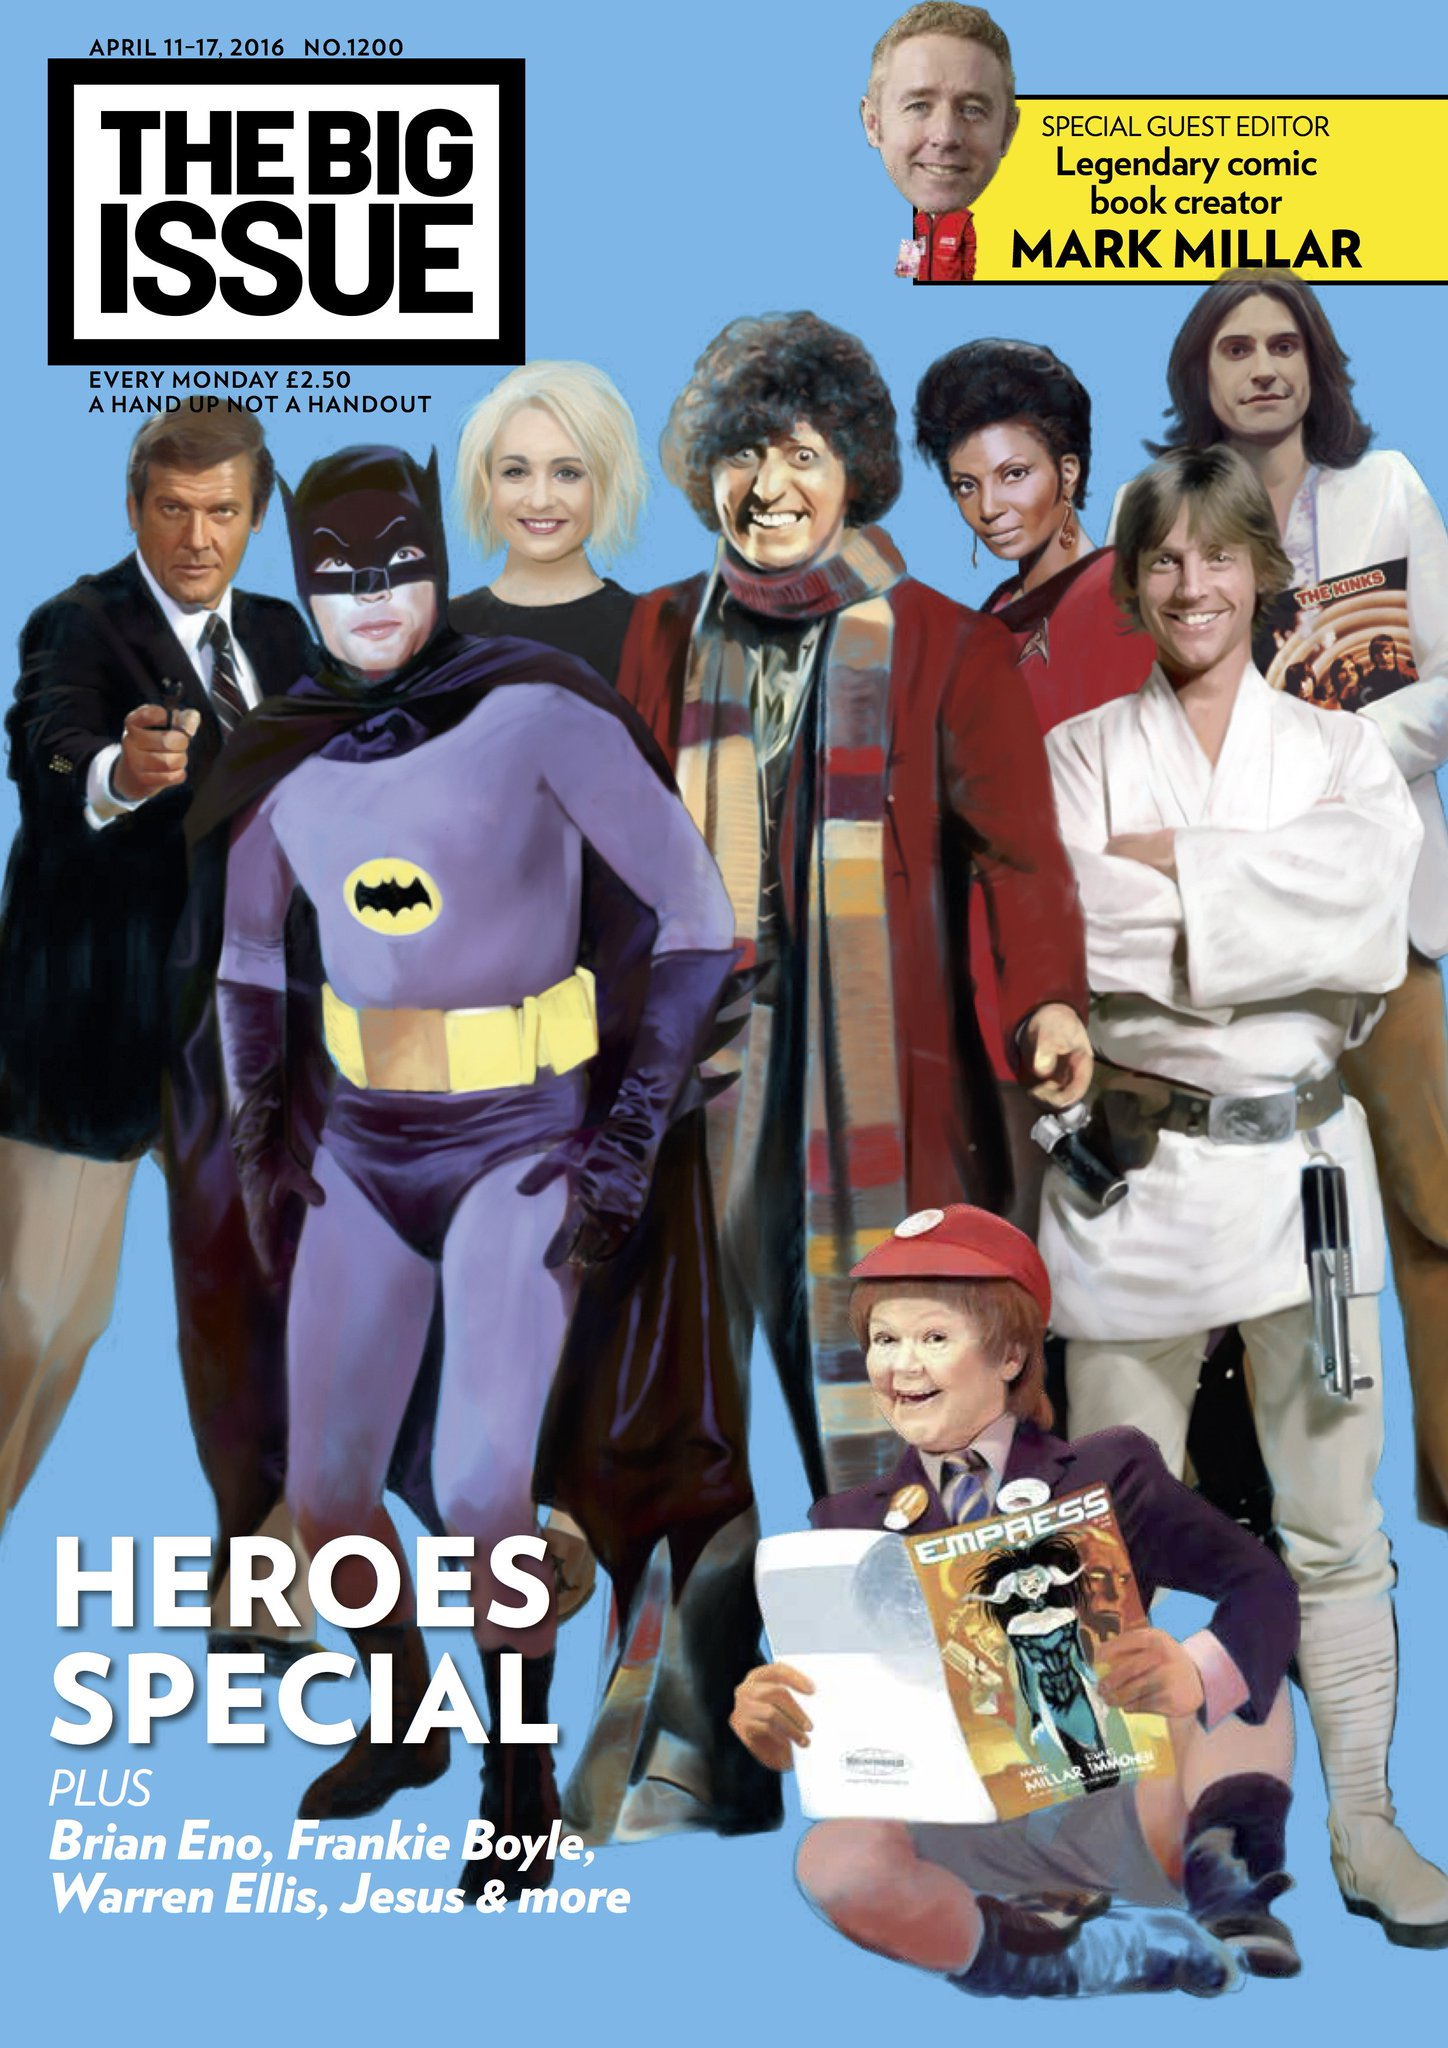 RT @BigIssue: Revealed: A HEROIC Big Issue – guest edited by @mrmarkmillar. Out across the UK from Monday. https://t.co/VAHmttqR6r https://…